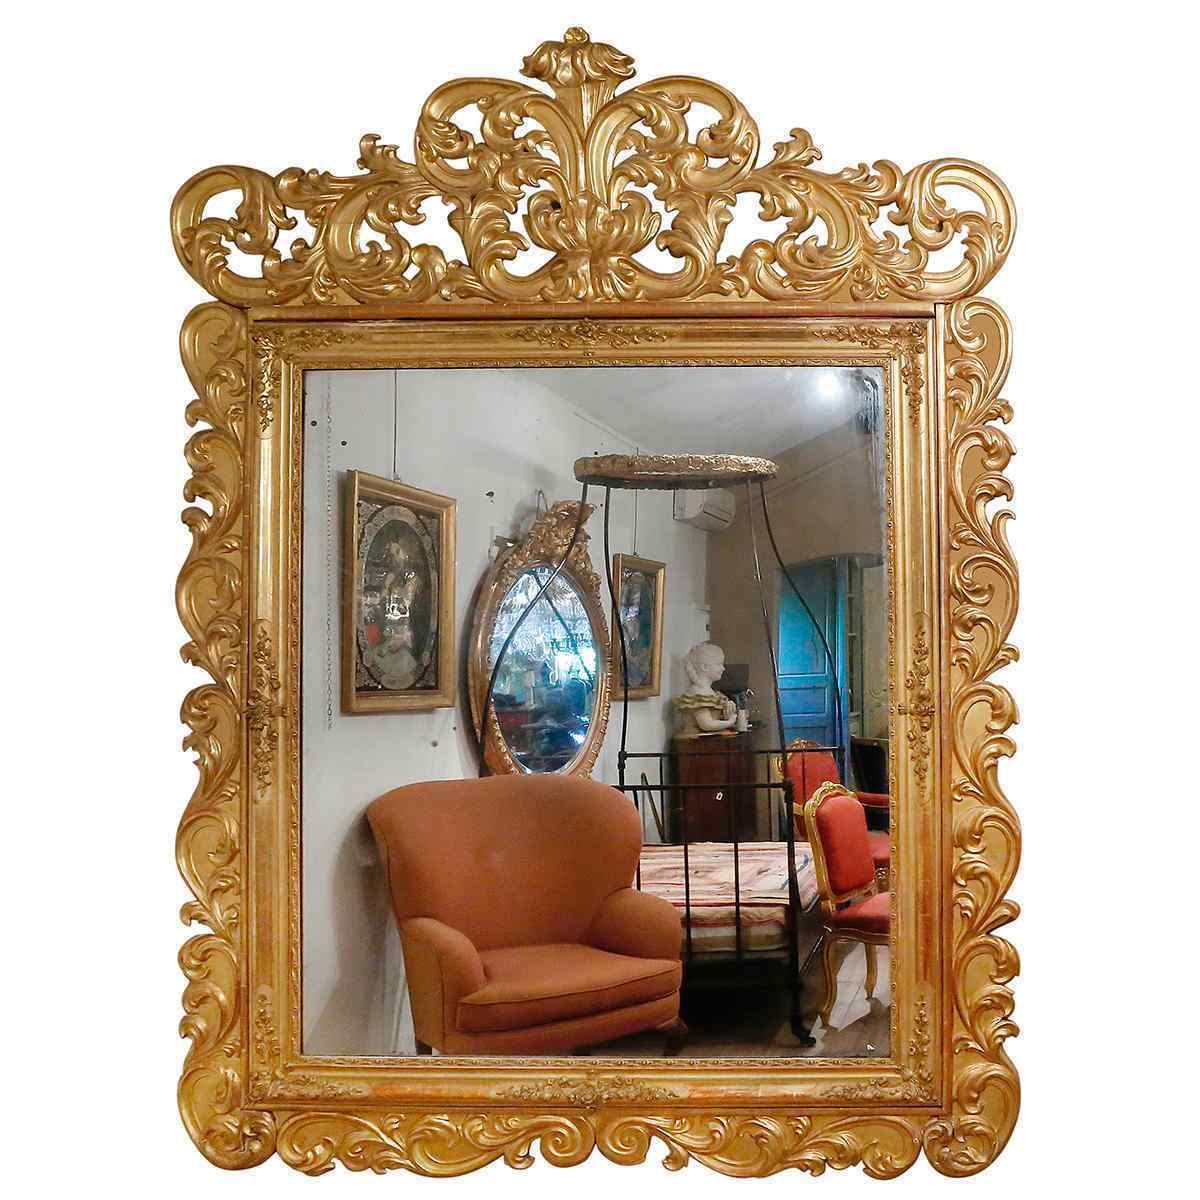 A Château Mirror from the Napoleon III Period